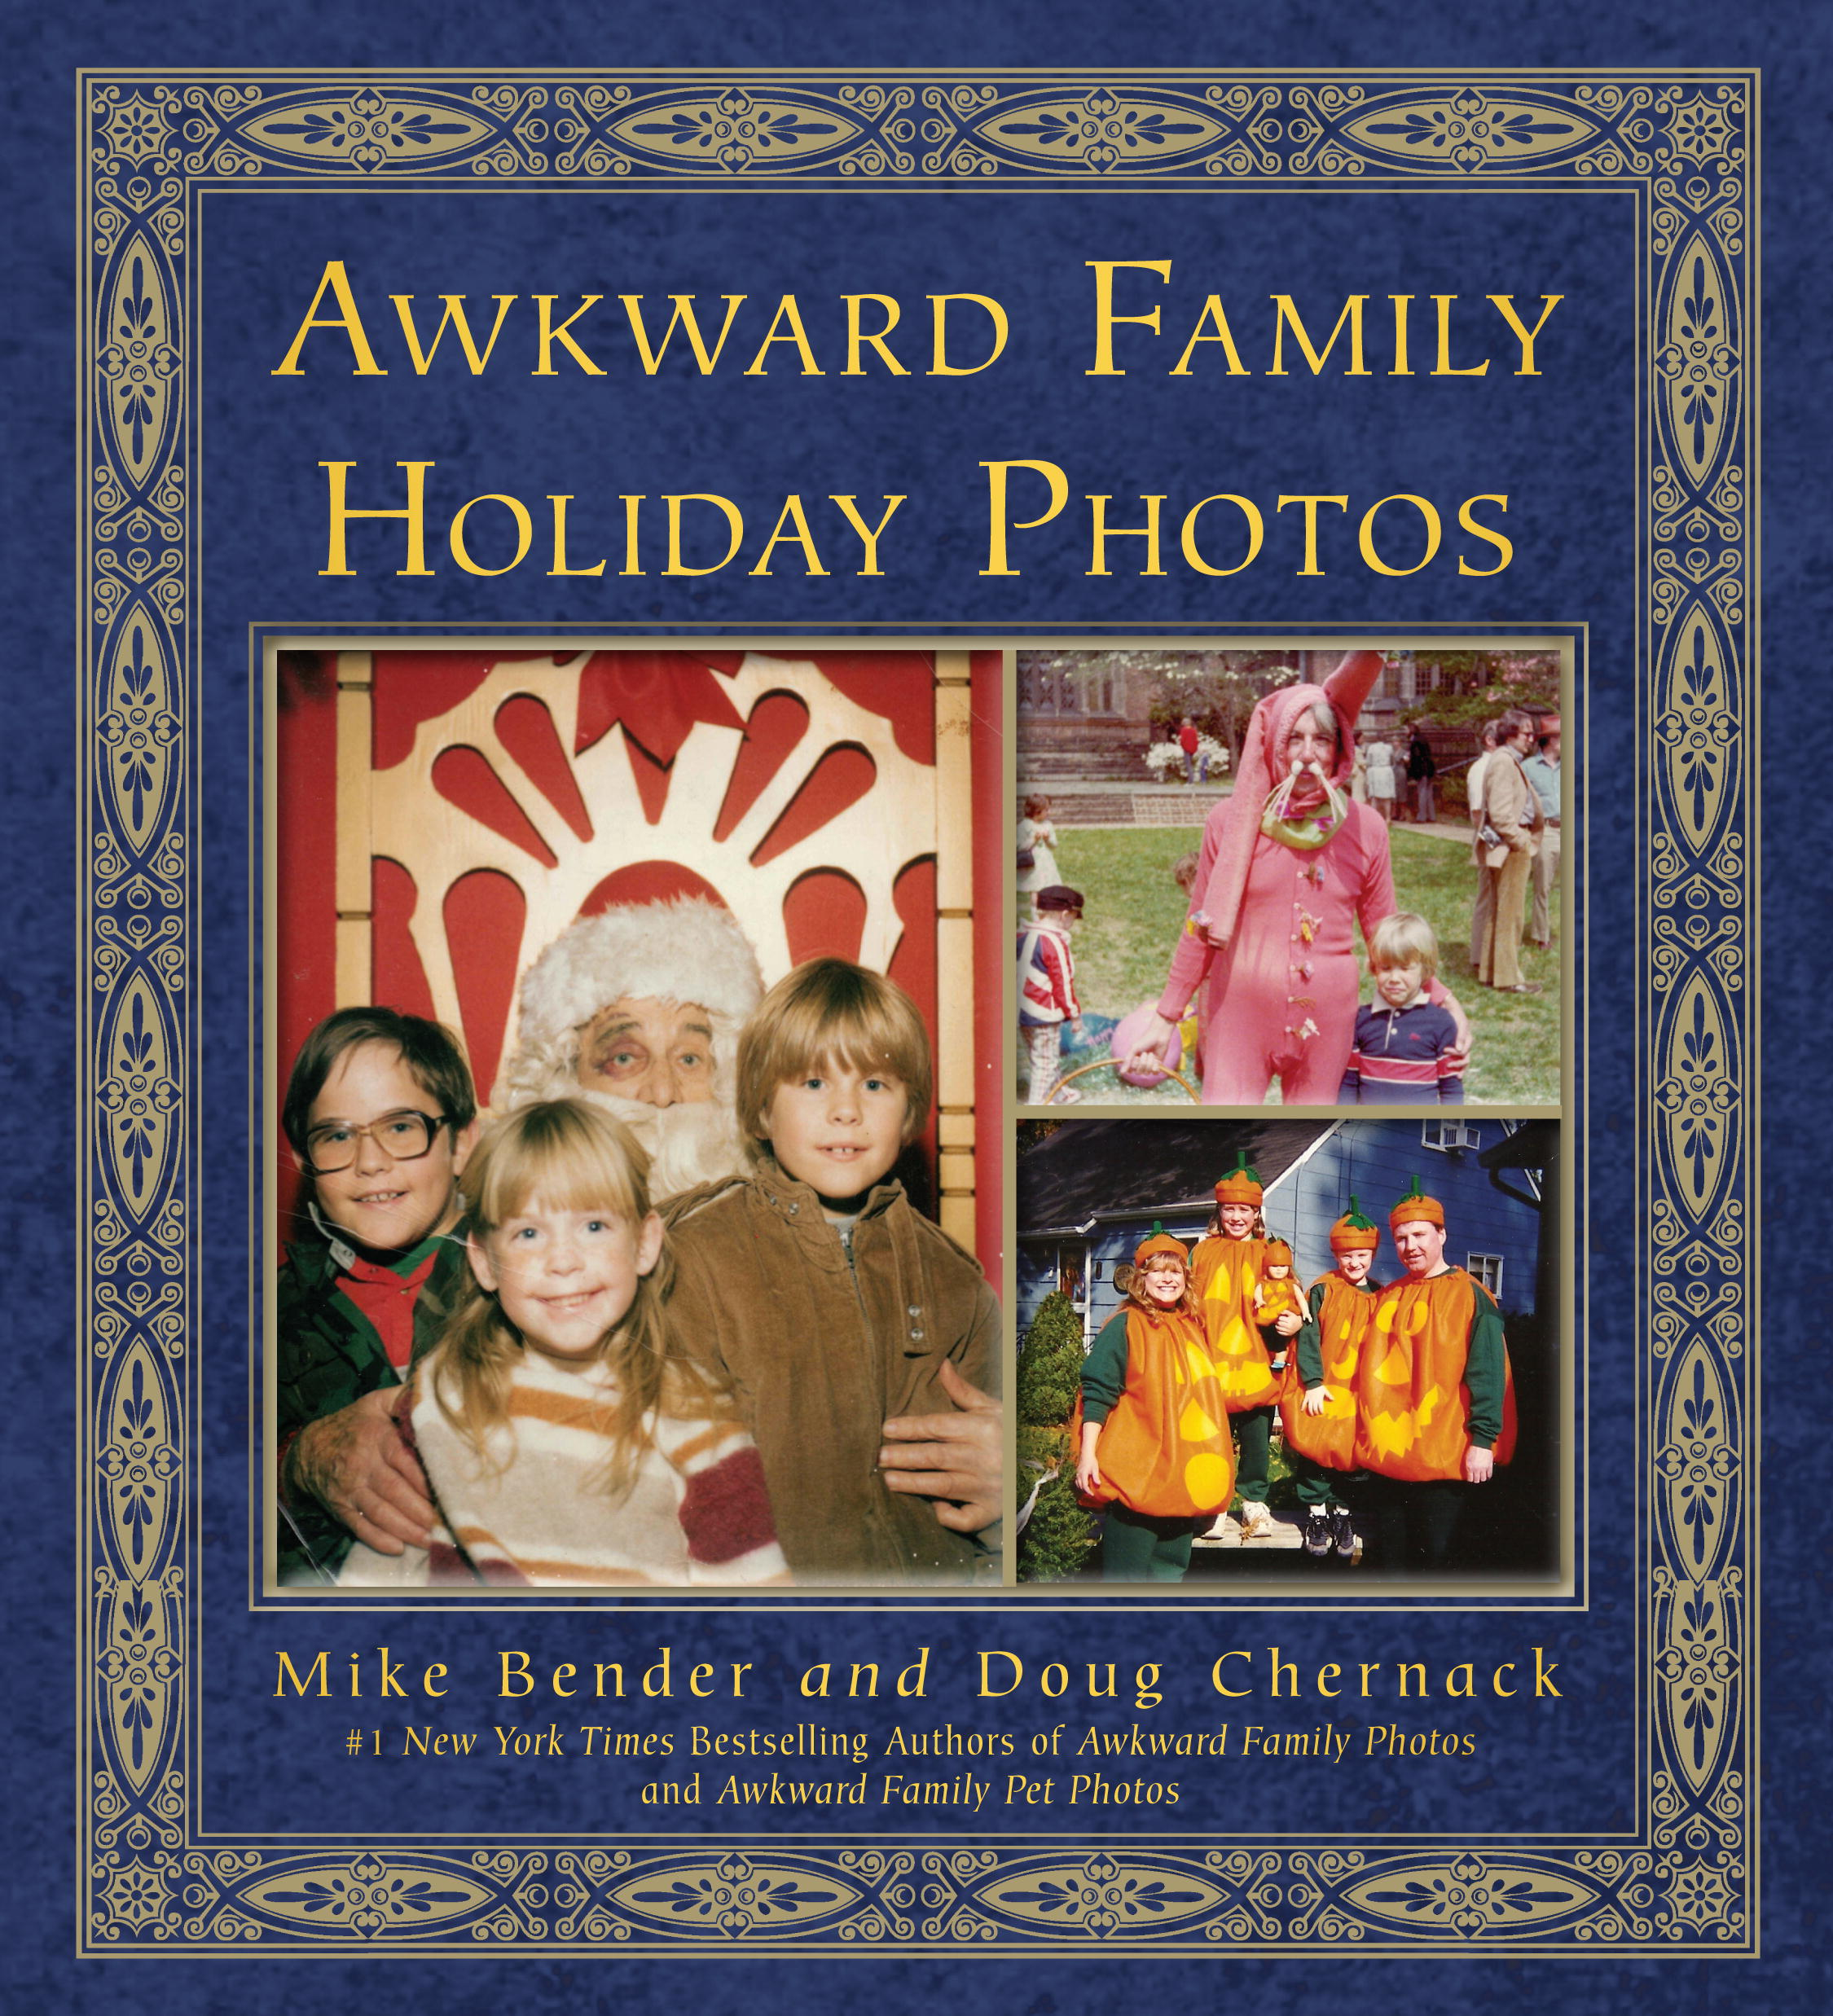 Get The AFP Holiday Book!